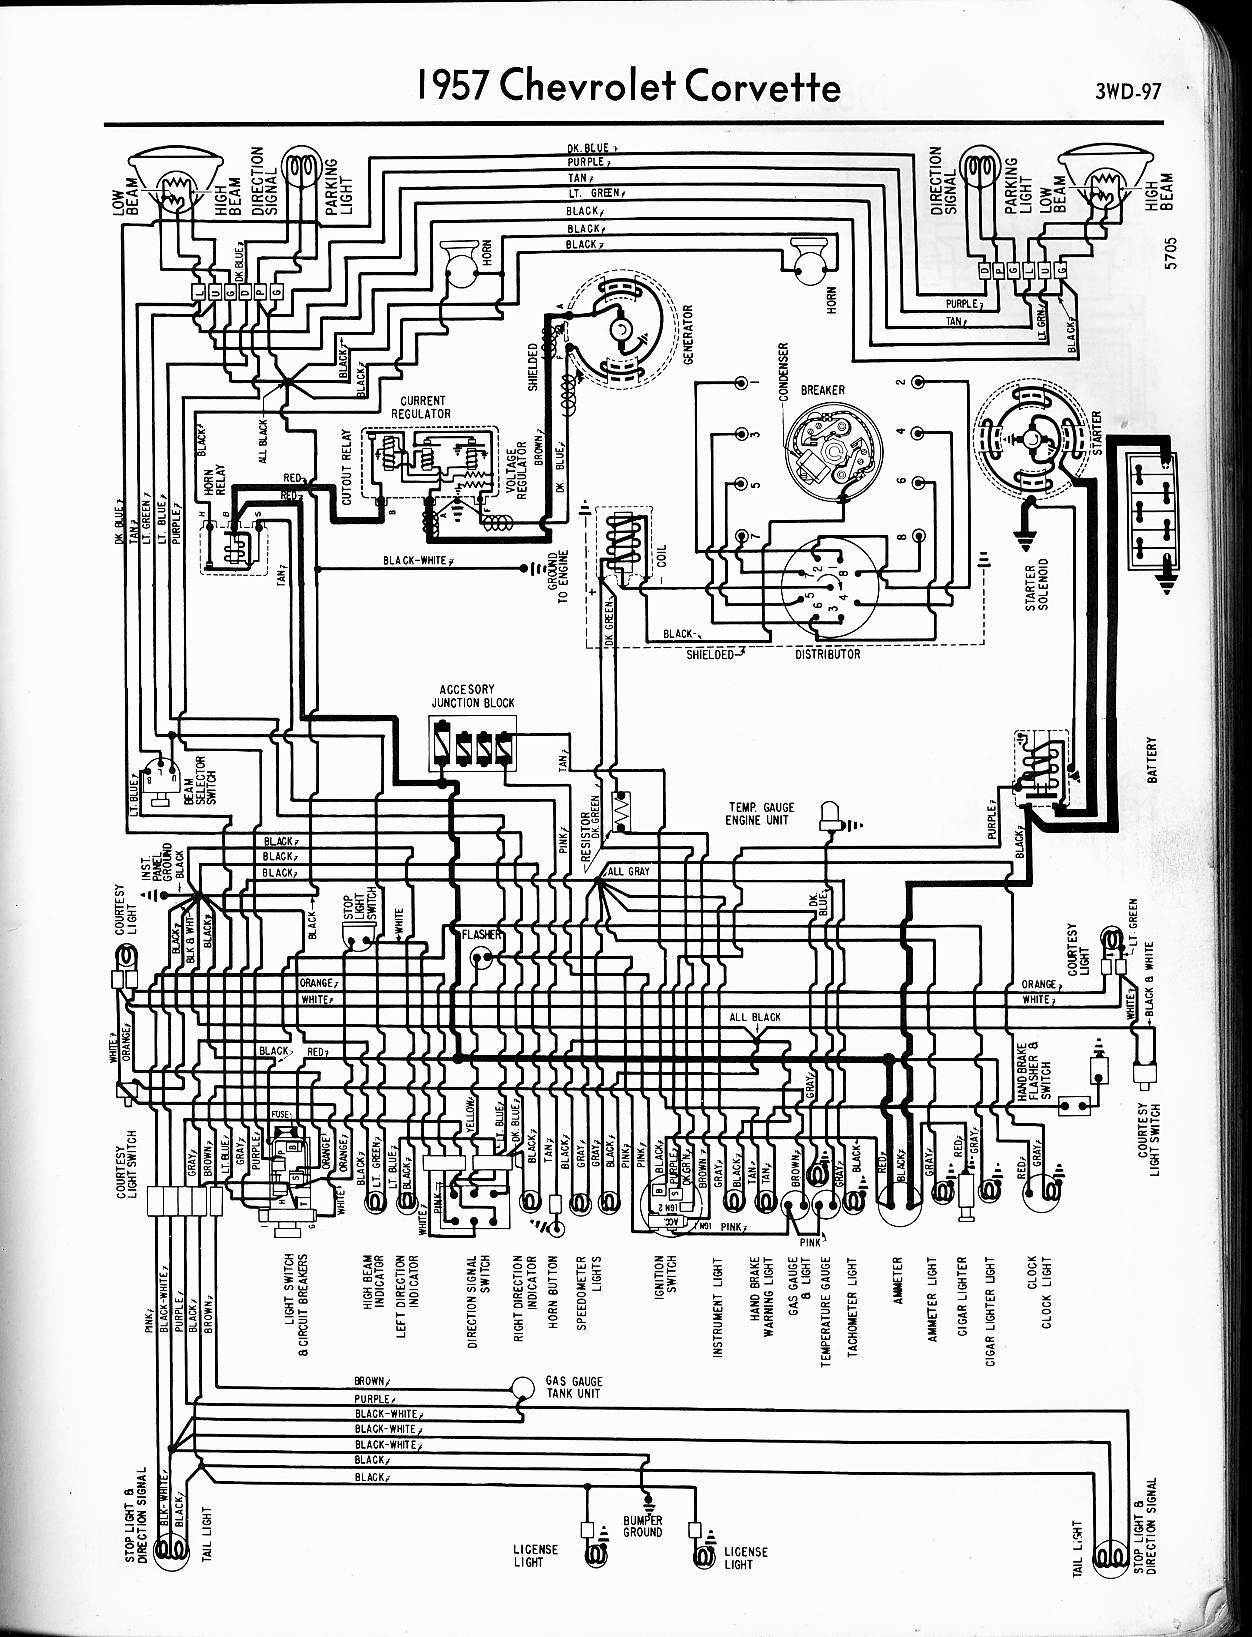 MWireChev57_3WD 097 57 65 chevy wiring diagrams GM Factory Wiring Diagram at reclaimingppi.co